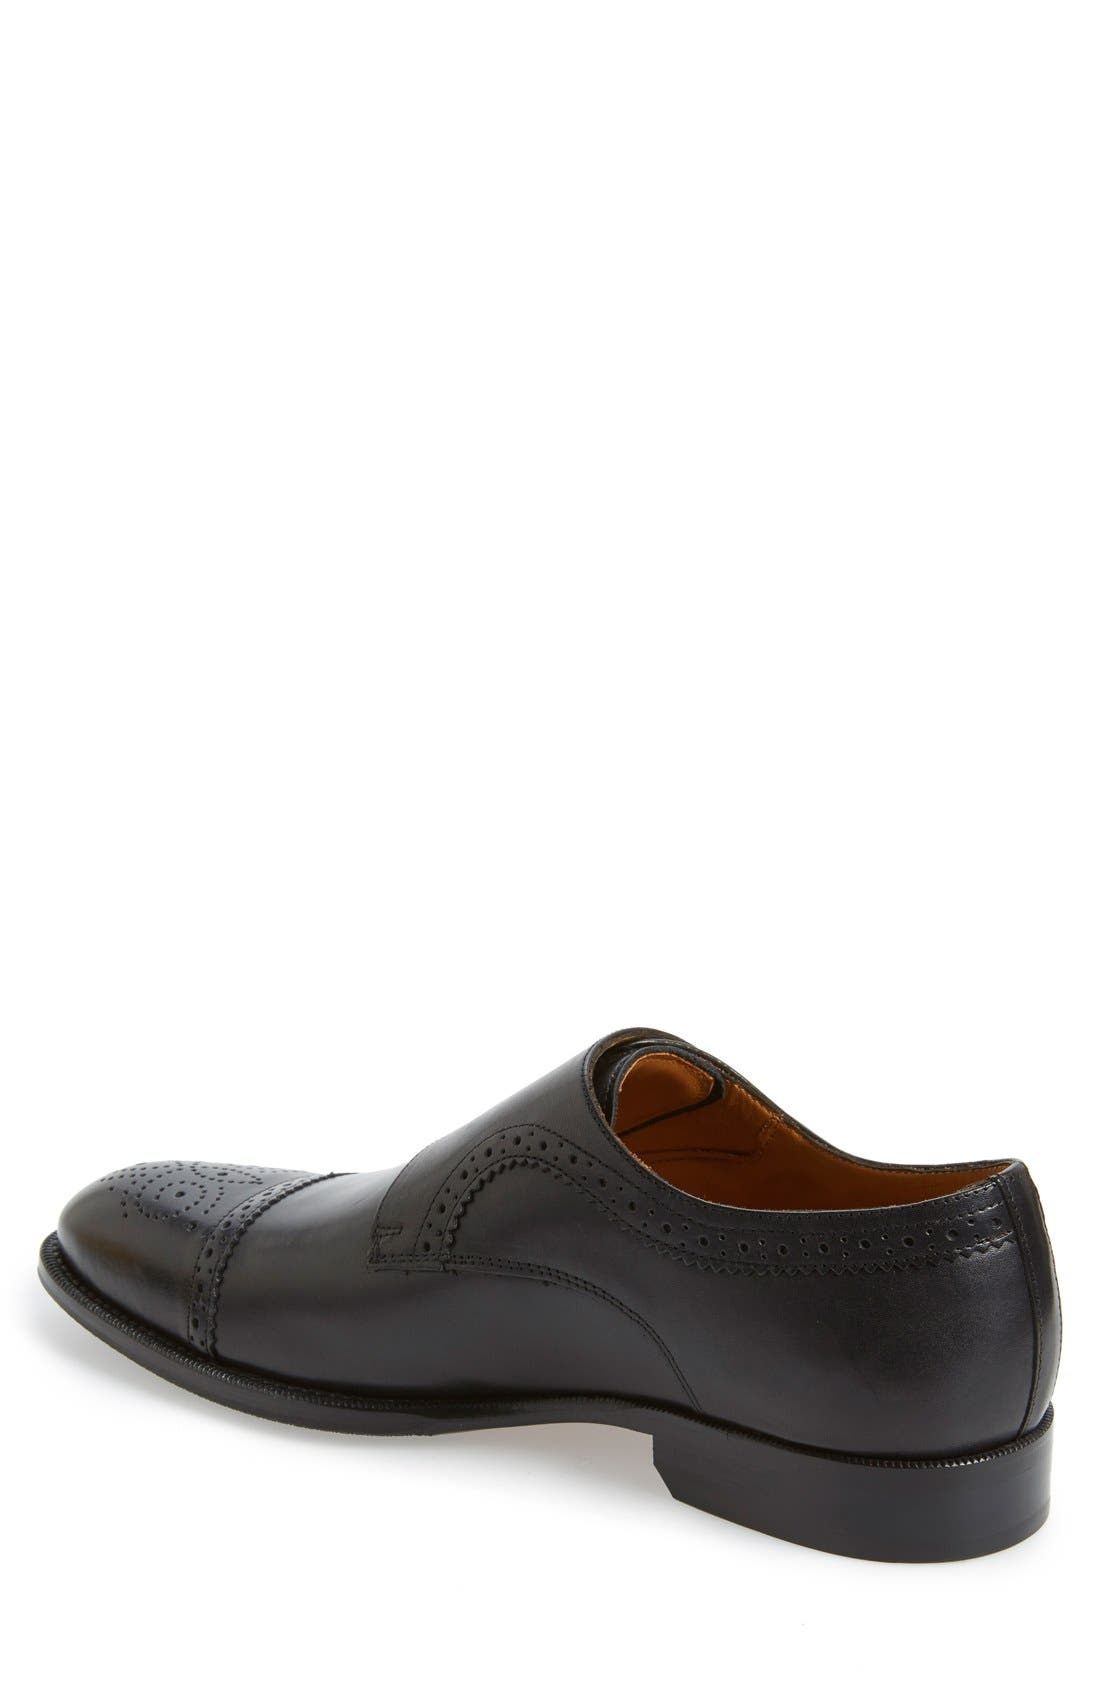 Alternate Image 2  - Vince Camuto 'Briant' Double Monk Strap Shoe (Men)